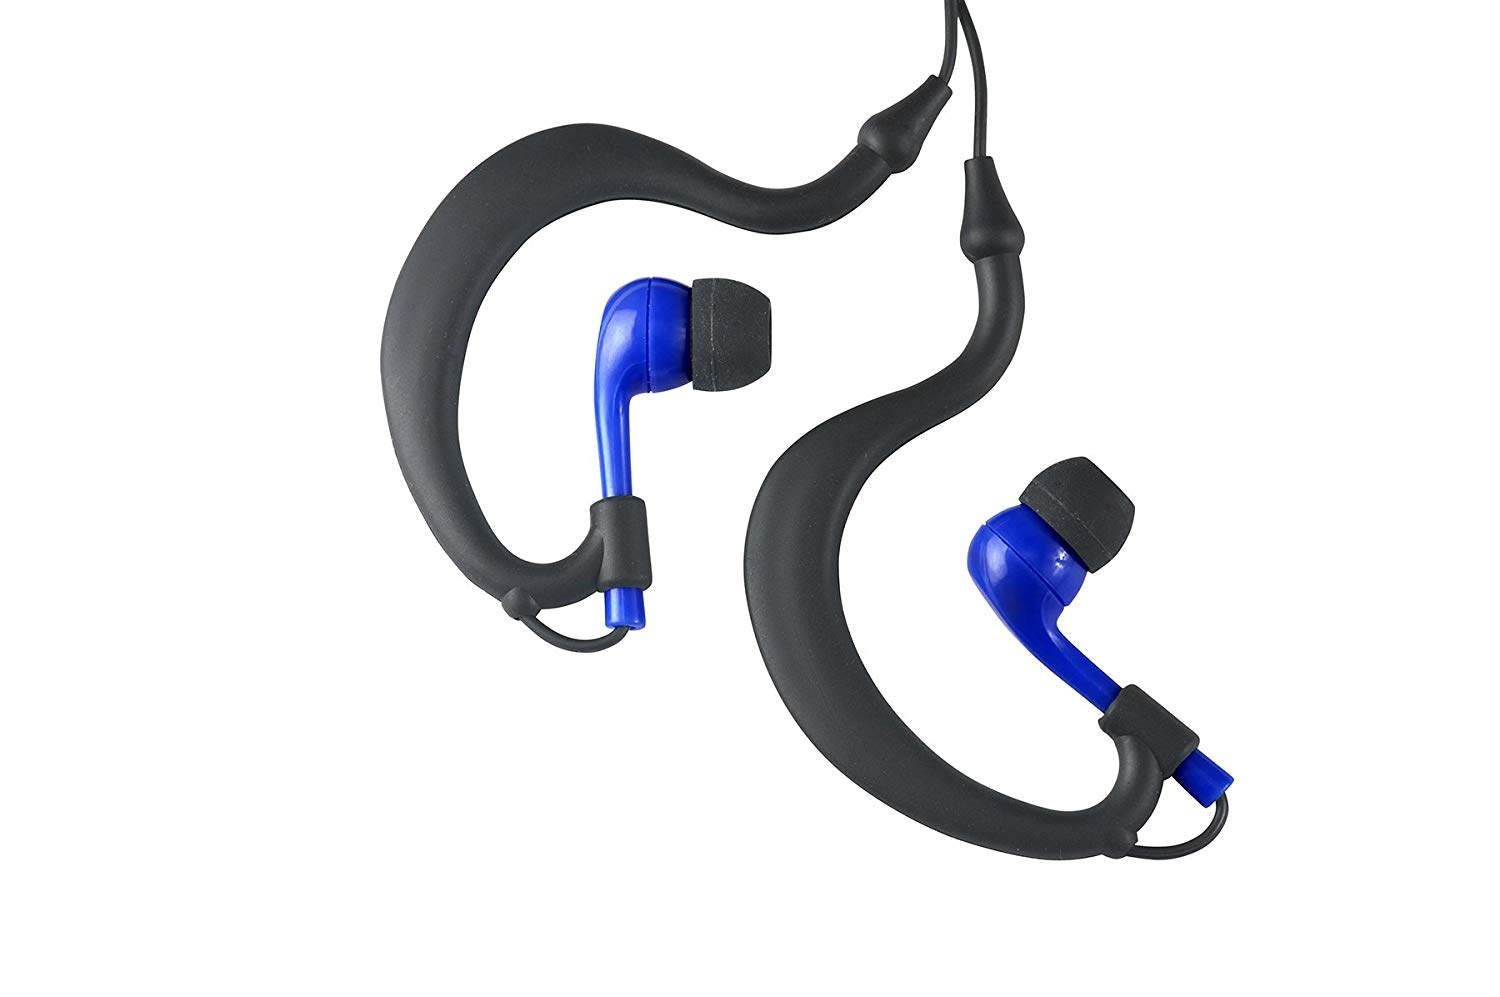 Uwater Triple-Axis 100% Waterproof Action Stereo Earphones-Black/Blue